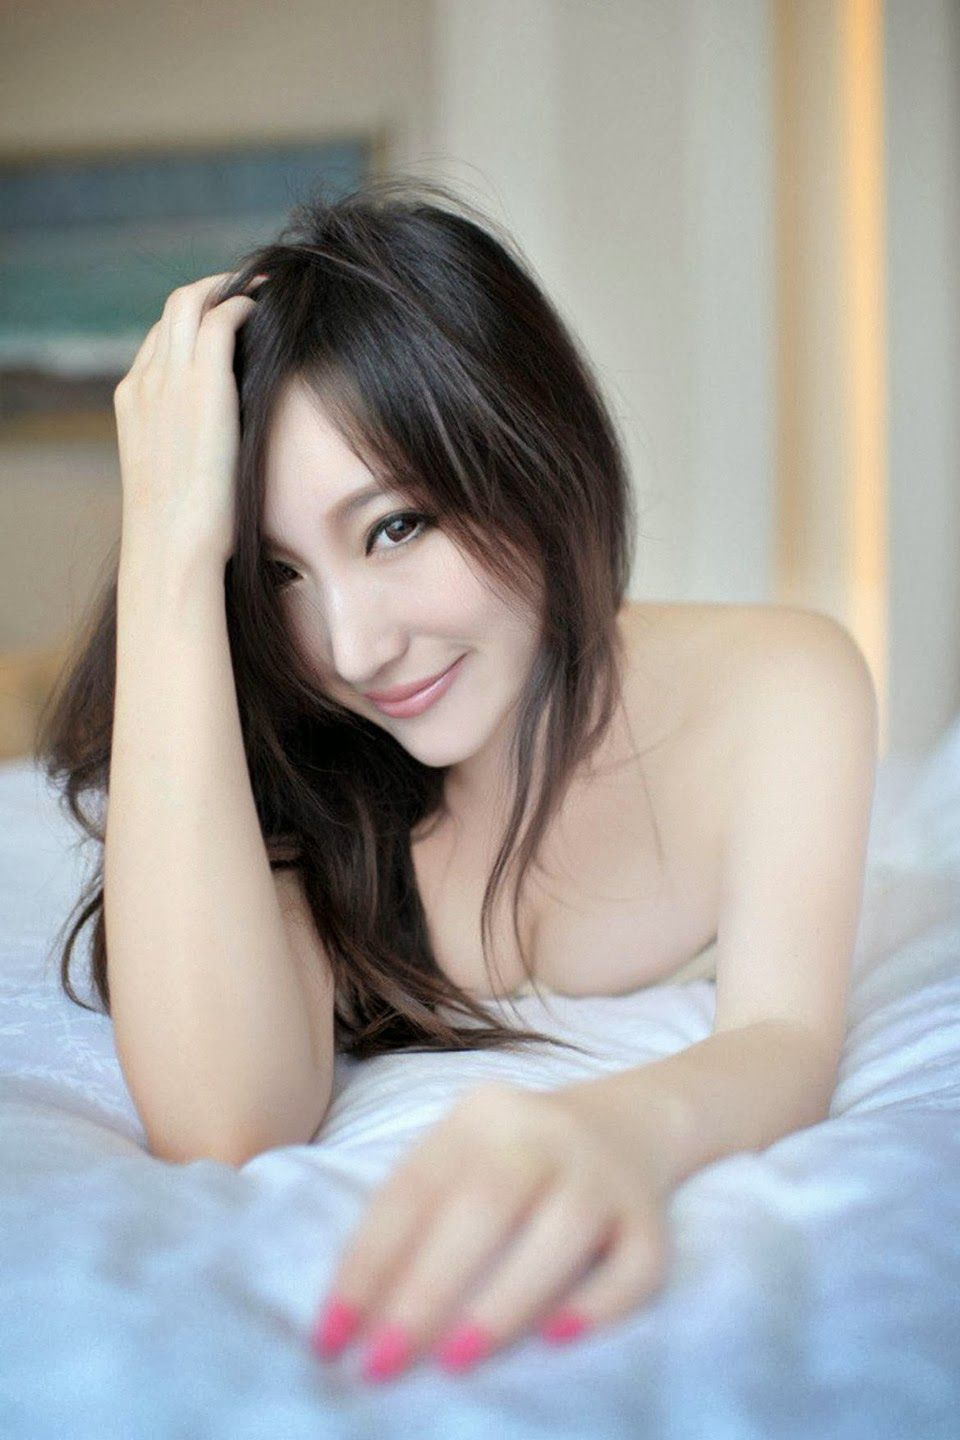 Asian girl sexy picture